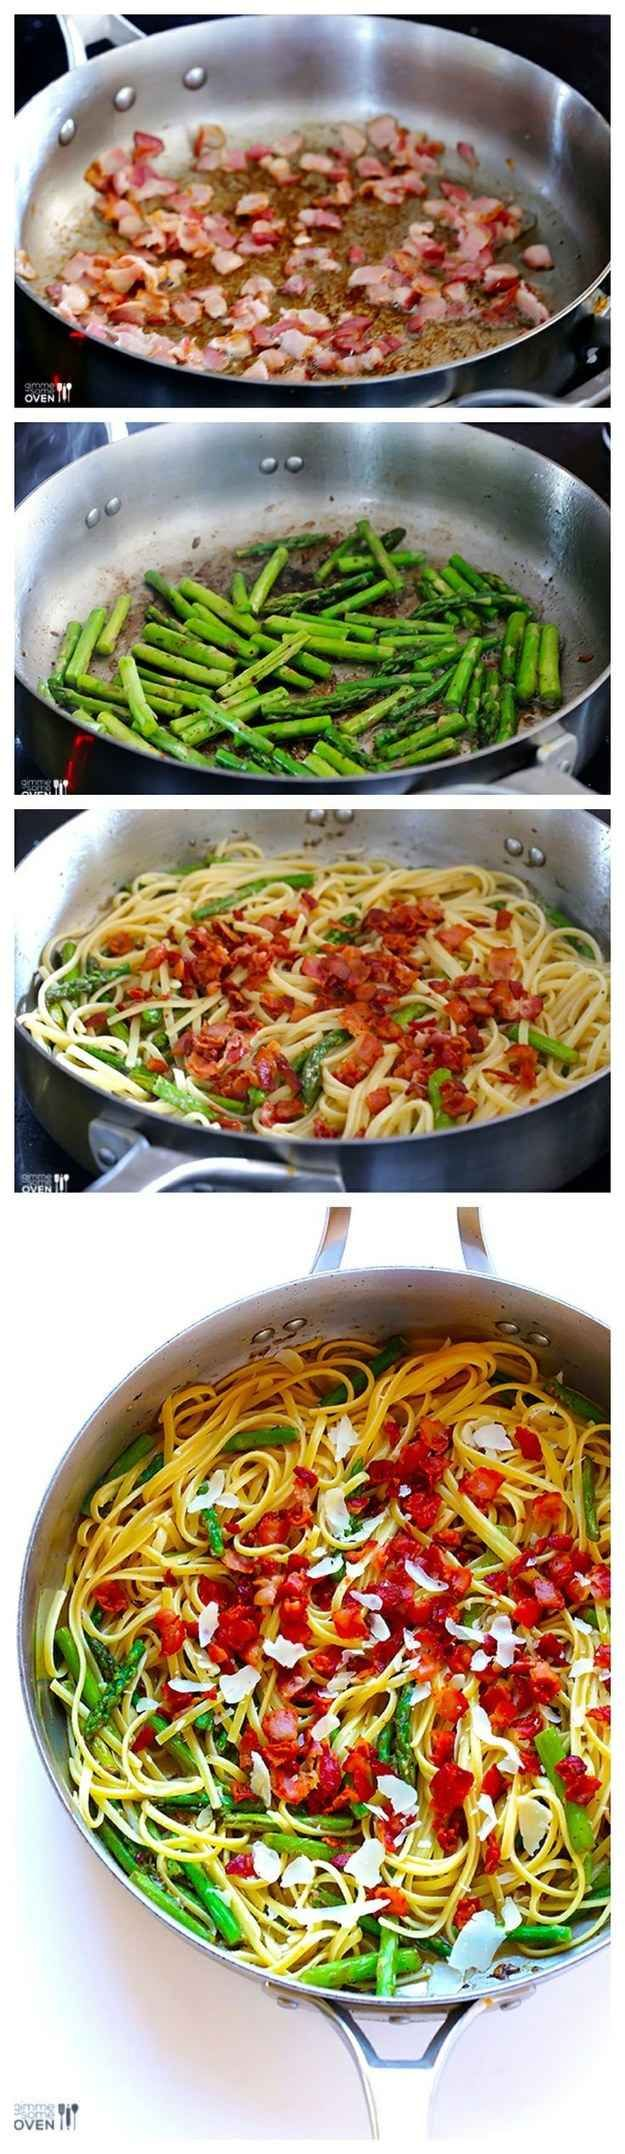 Bacon asparagus pasta 23 Easy Five-Ingredient Dinner Recipes #dinner #recipes #maincourse #recipe #healthy